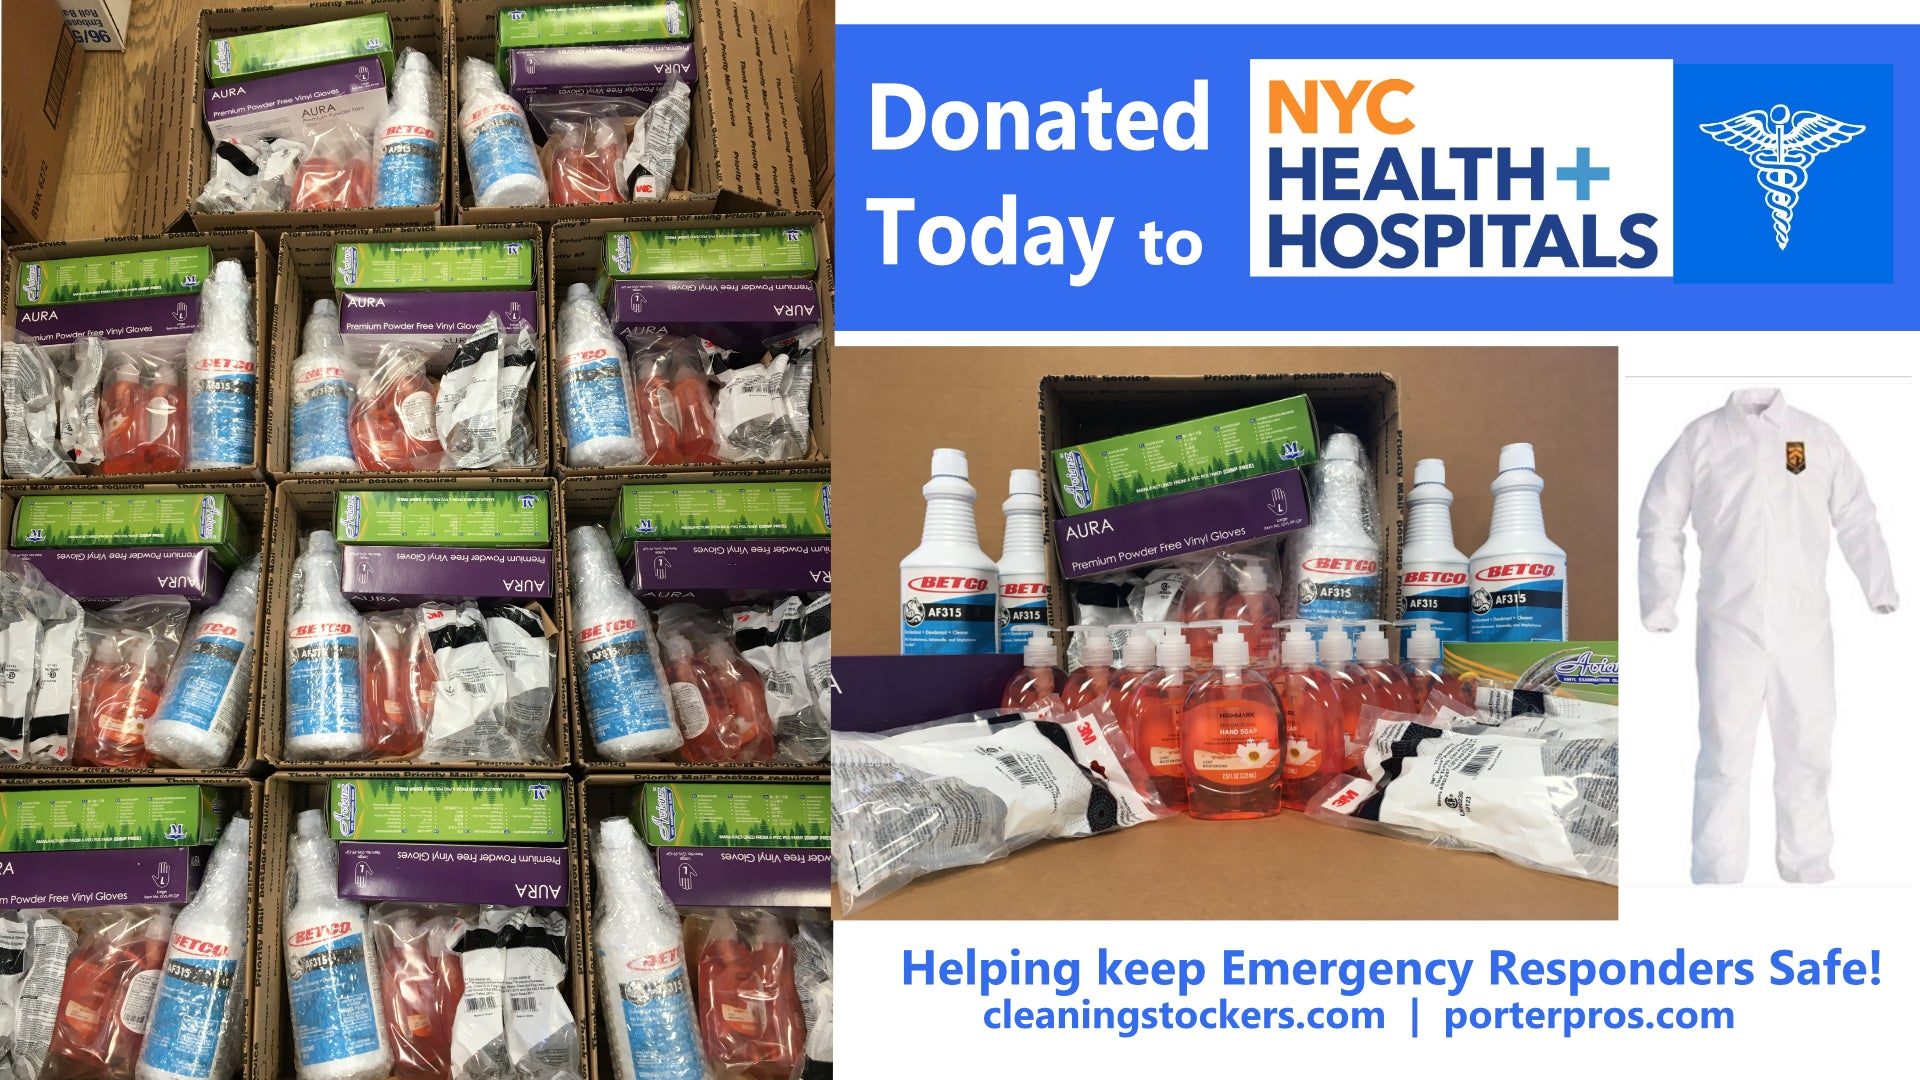 Donated to 11 NYC Hospitals